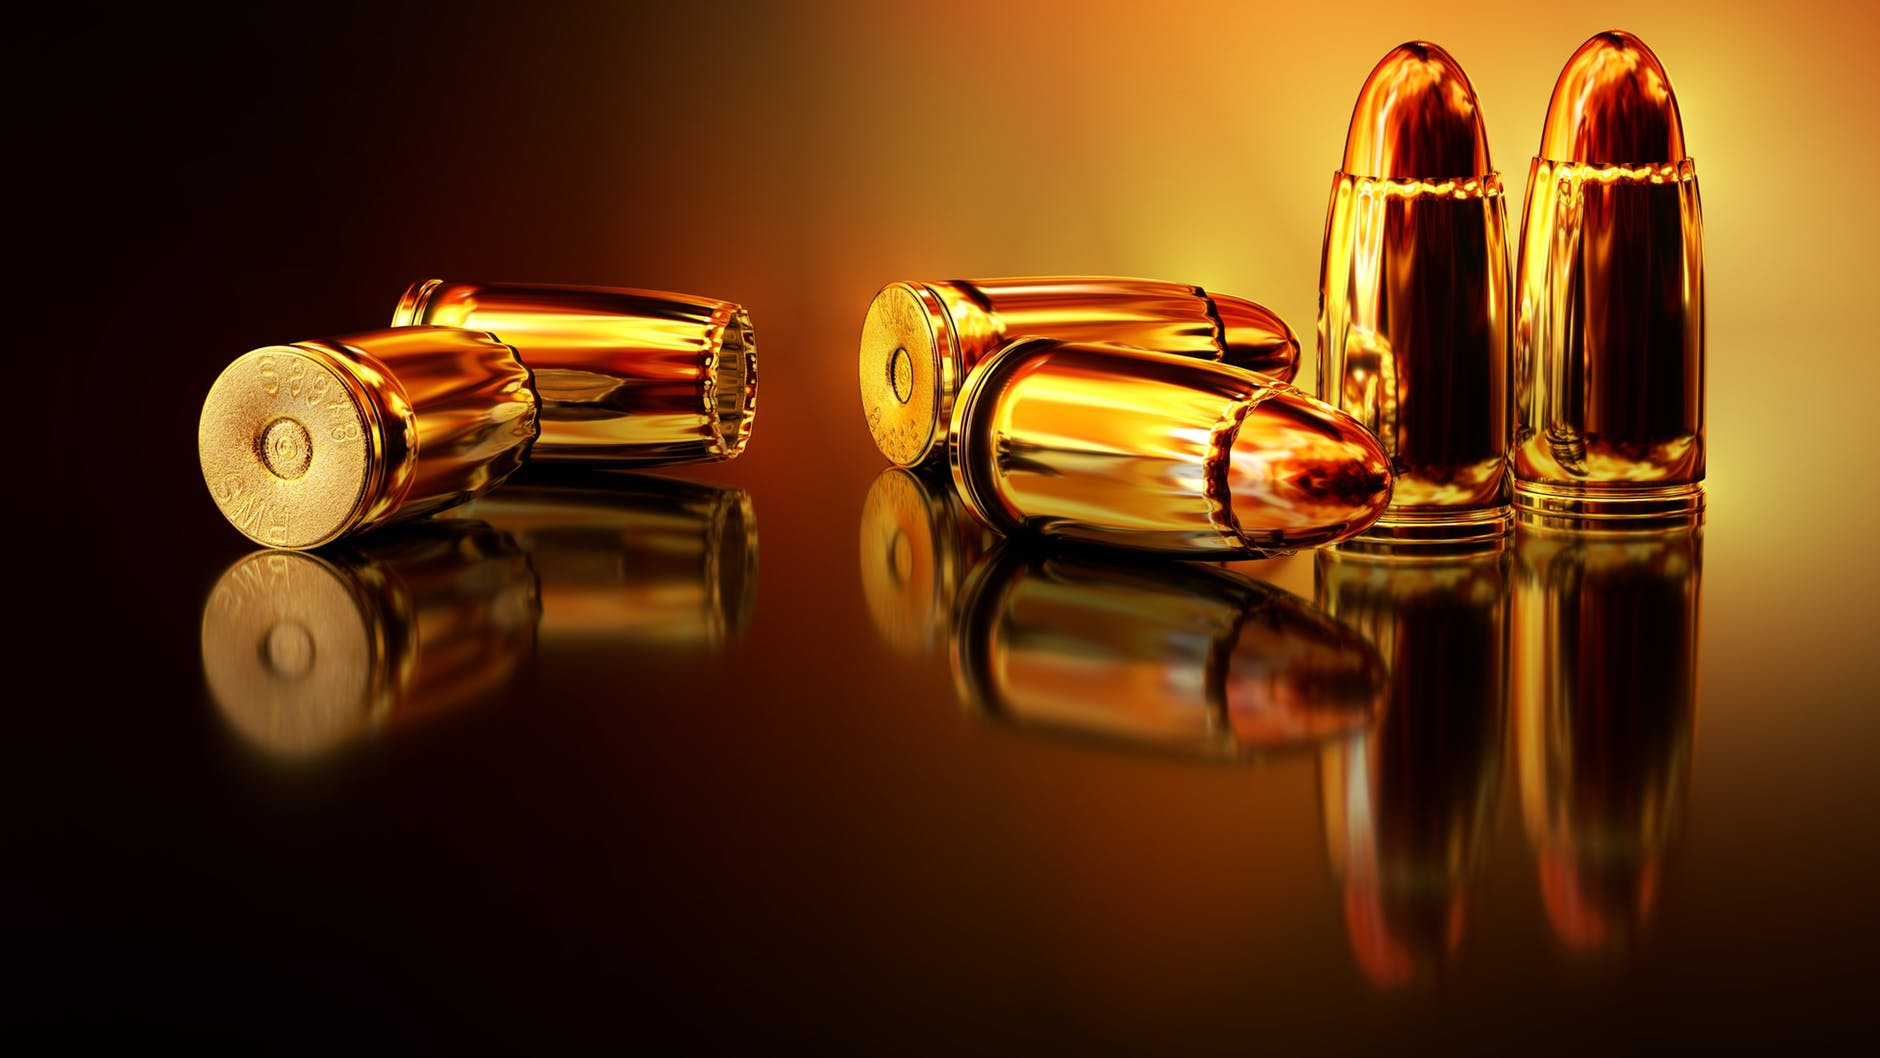 ammunition brass bullets cartridges